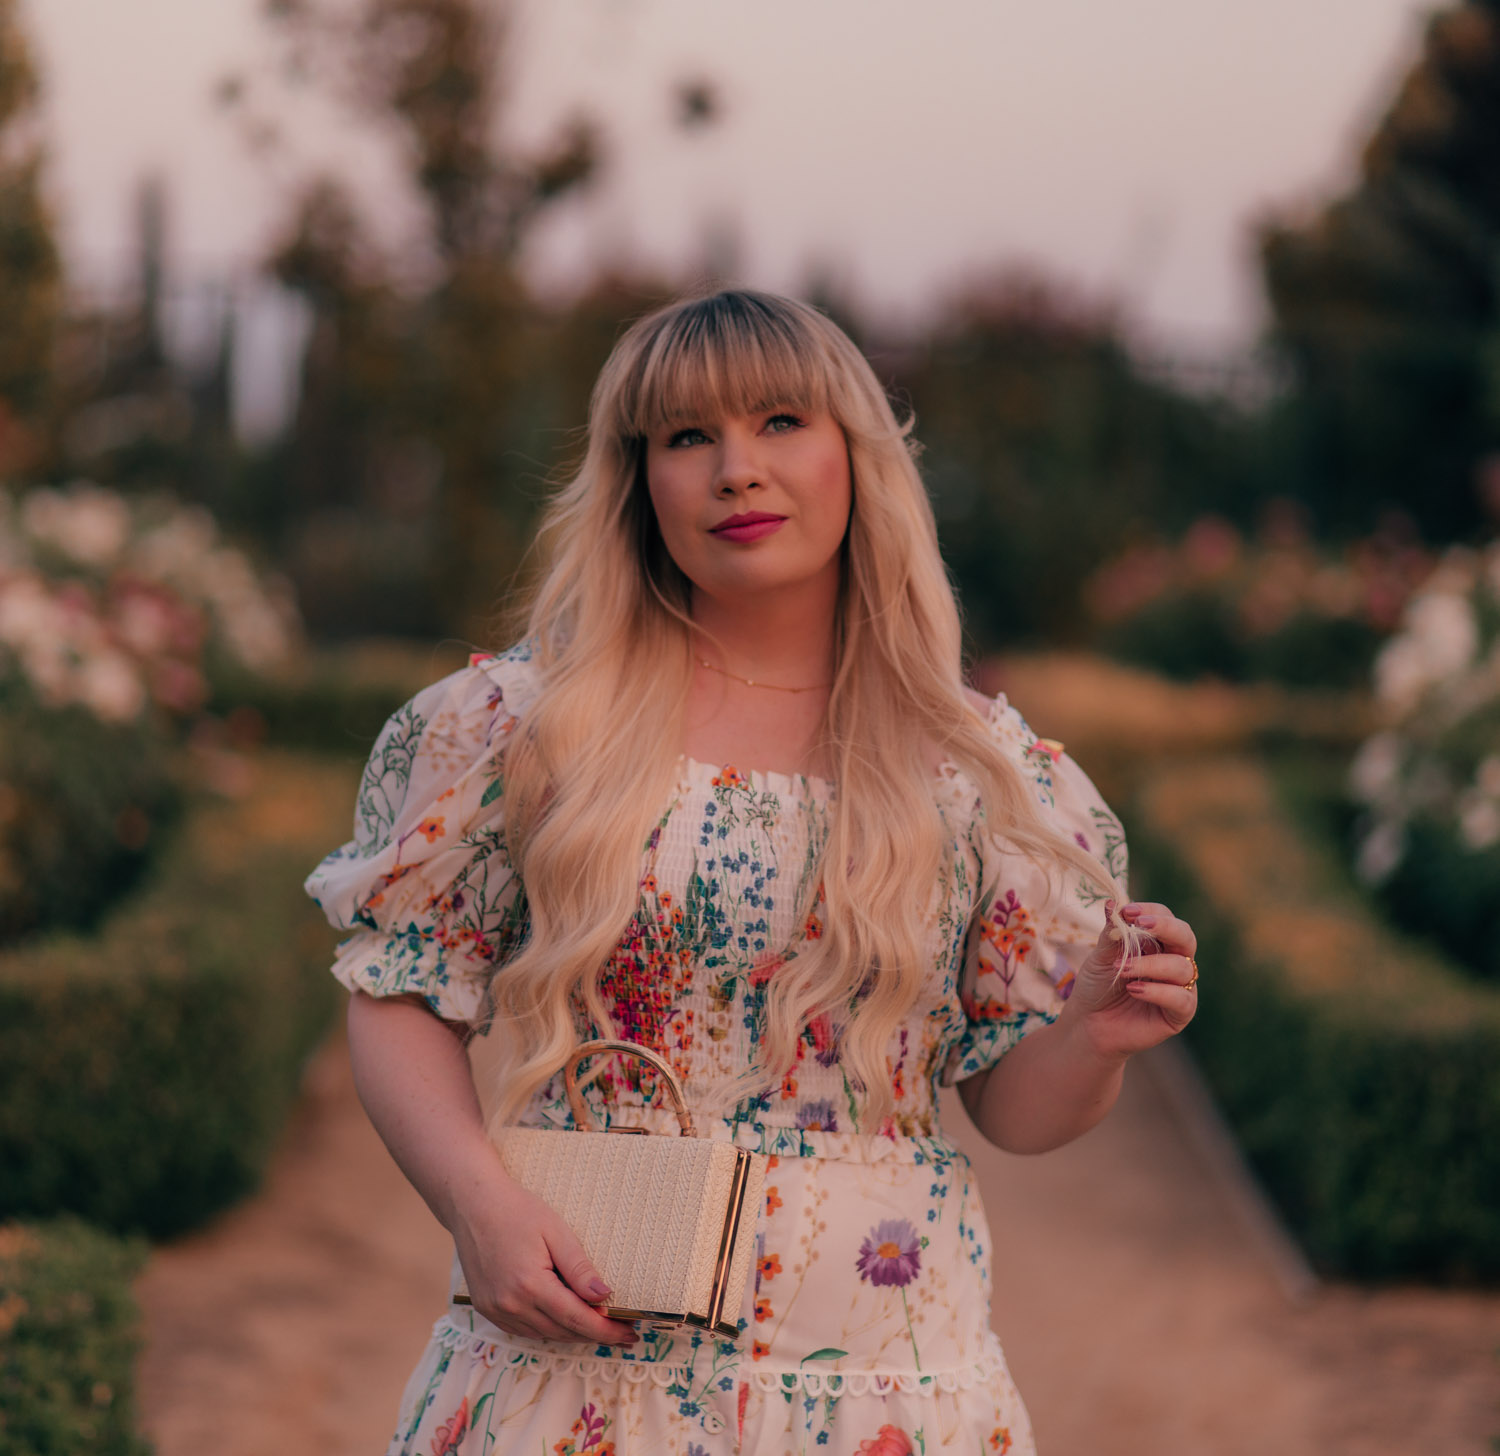 Feminine Fashion Blogger Elizabeth Hugen of Lizzie in Lace styles a floral top and skirt set from Chicwish for summer